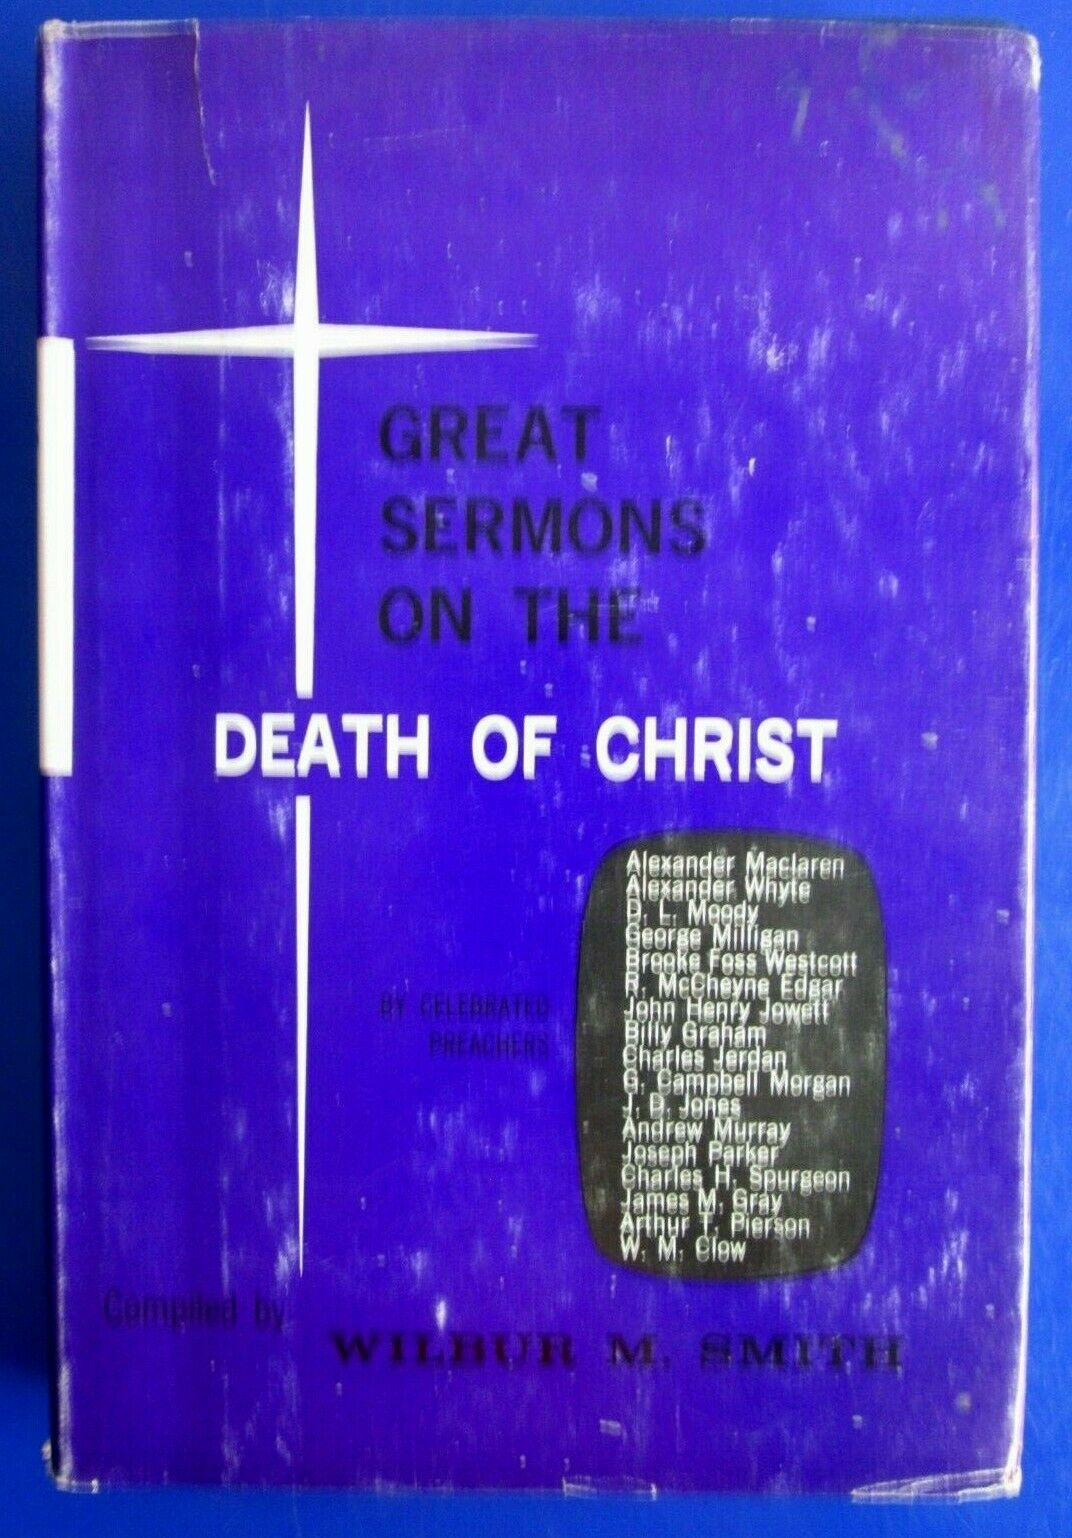 1965 Great Sermons On The Death Of Christ Complied By Wilbur M. Smith HC/DJ Book - $7.99